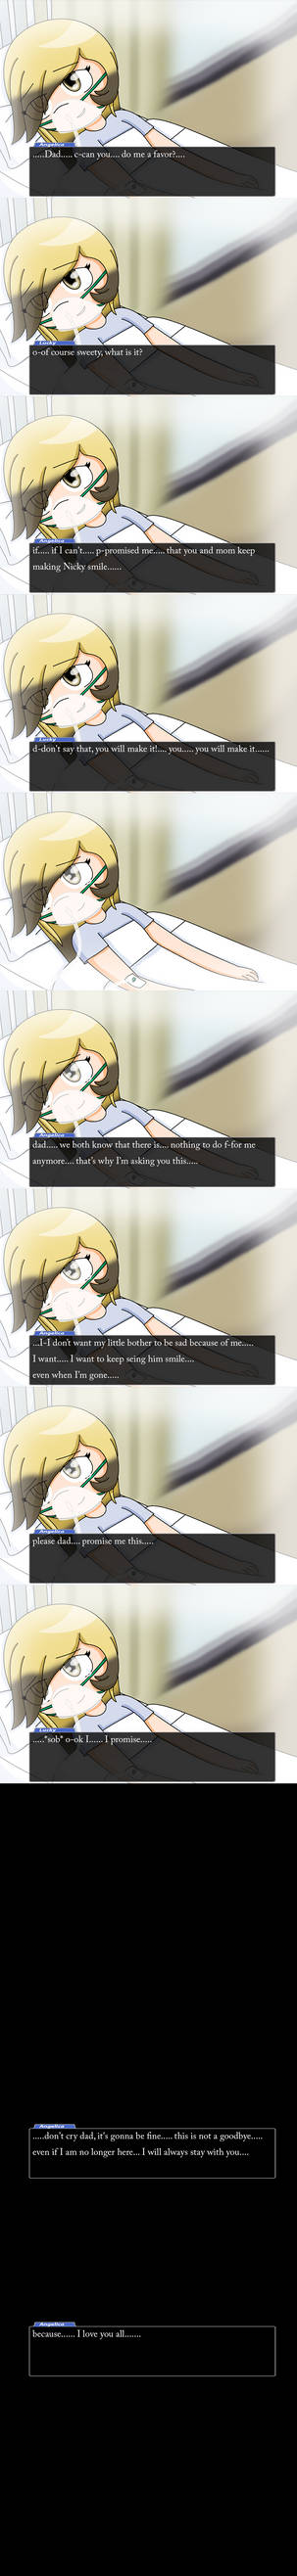 Turnabout Parents - part 421